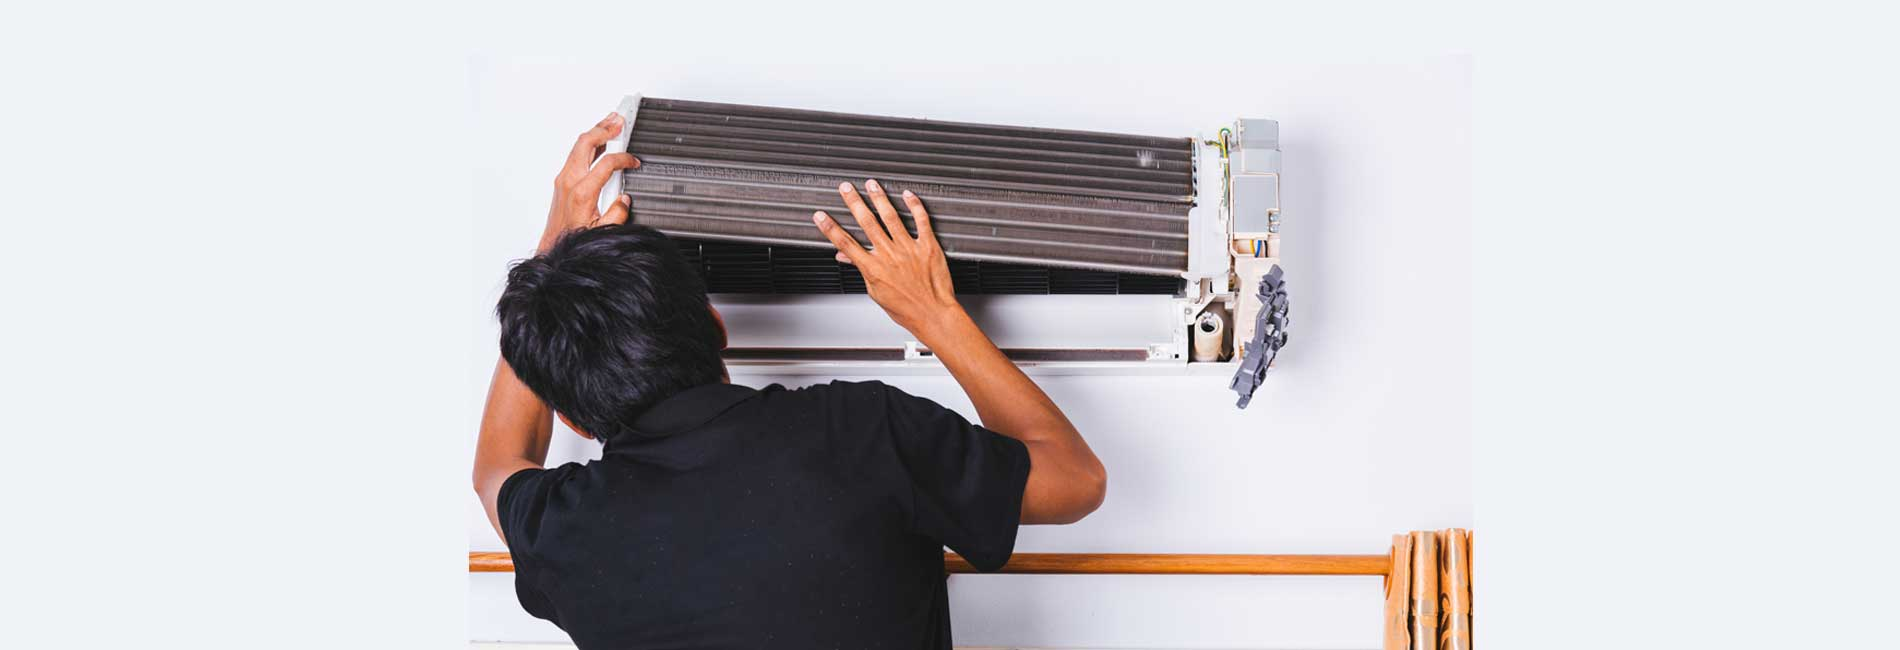 IFB Split AC Uninstallation in thiru vi ka nagar